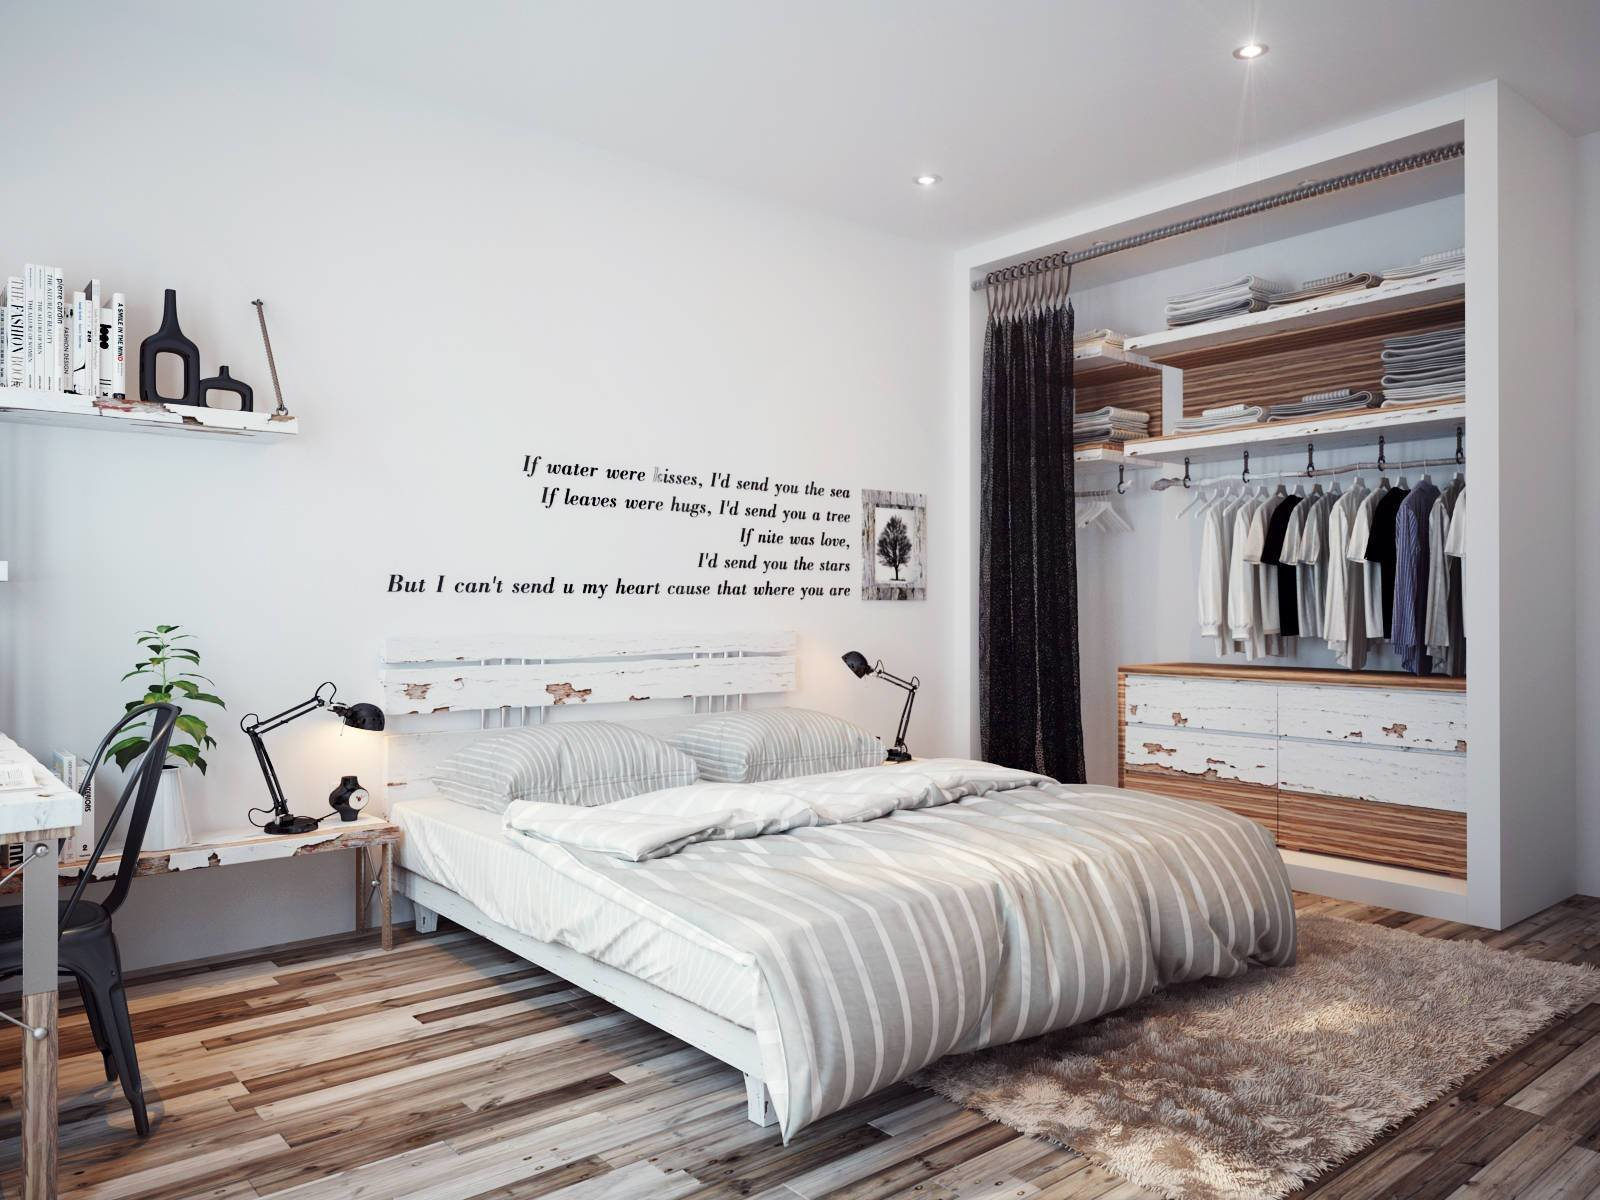 Best Bedroom Wall Quote Interior Design Ideas With Pictures